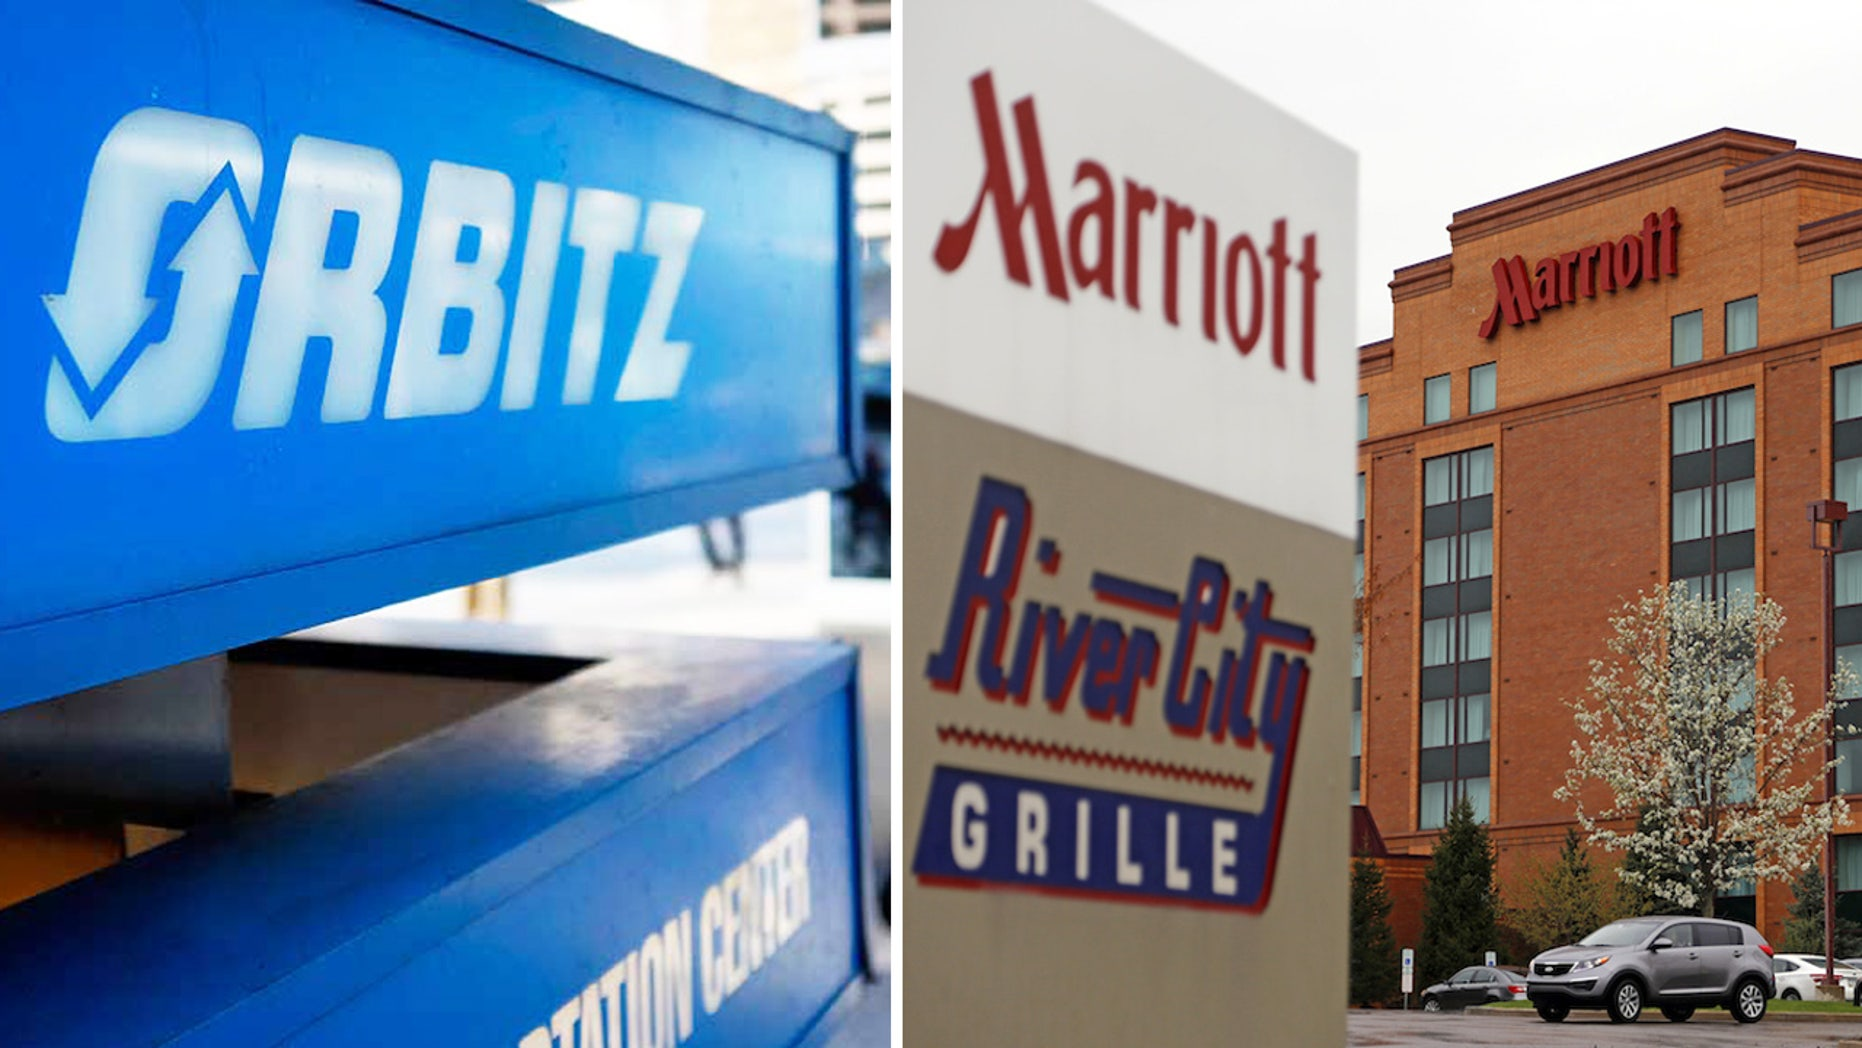 Is it cheaper to book your hotel through an online travel agency, like Orbitz, or through a hotel directly?